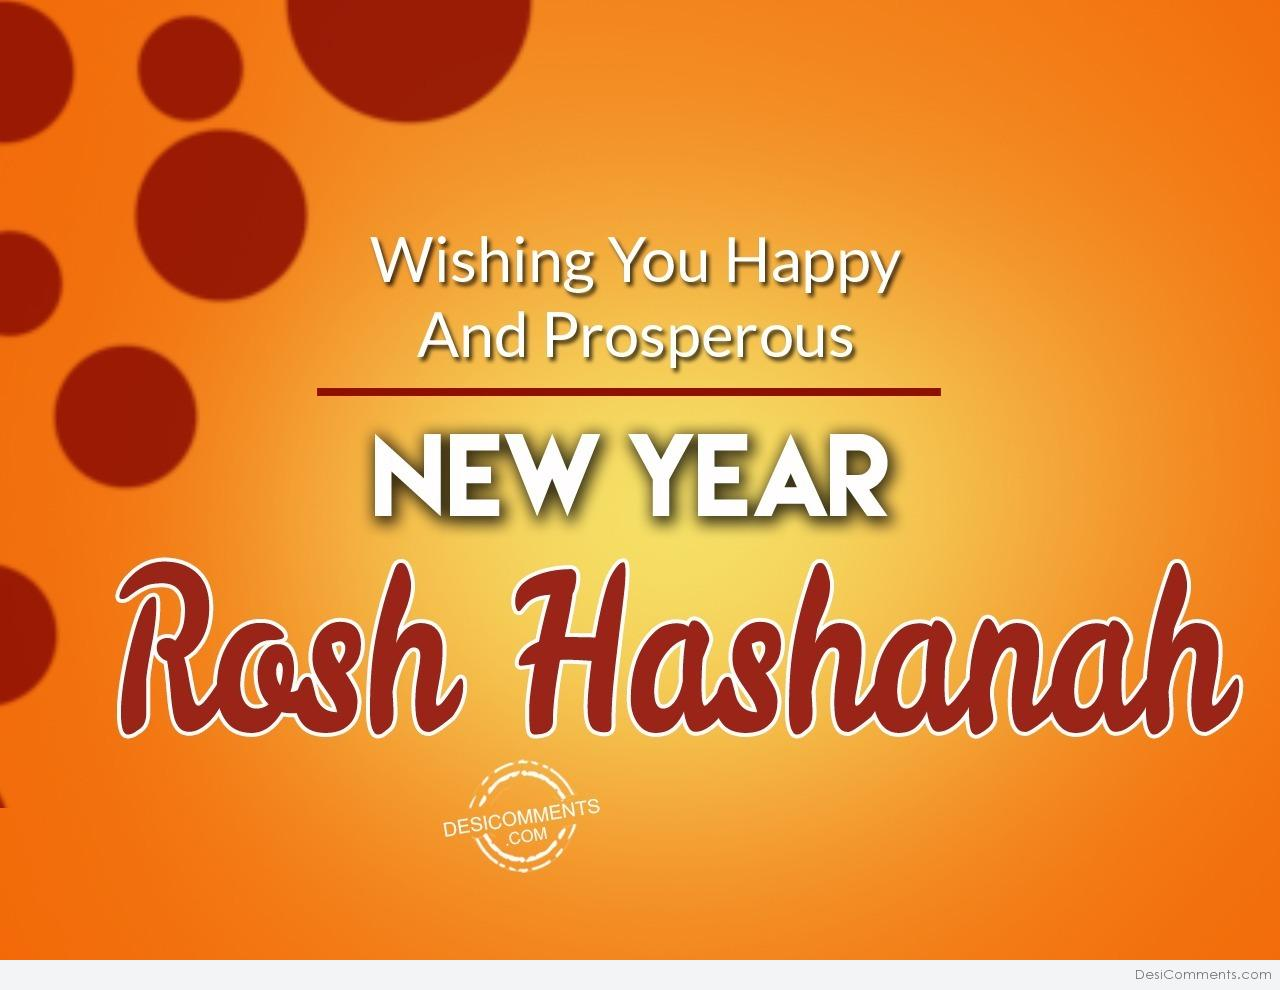 41 happy rosh hashanah 2016 greetings pictures and images wishing you happy and prosperous new year rosh hashanah kristyandbryce Choice Image